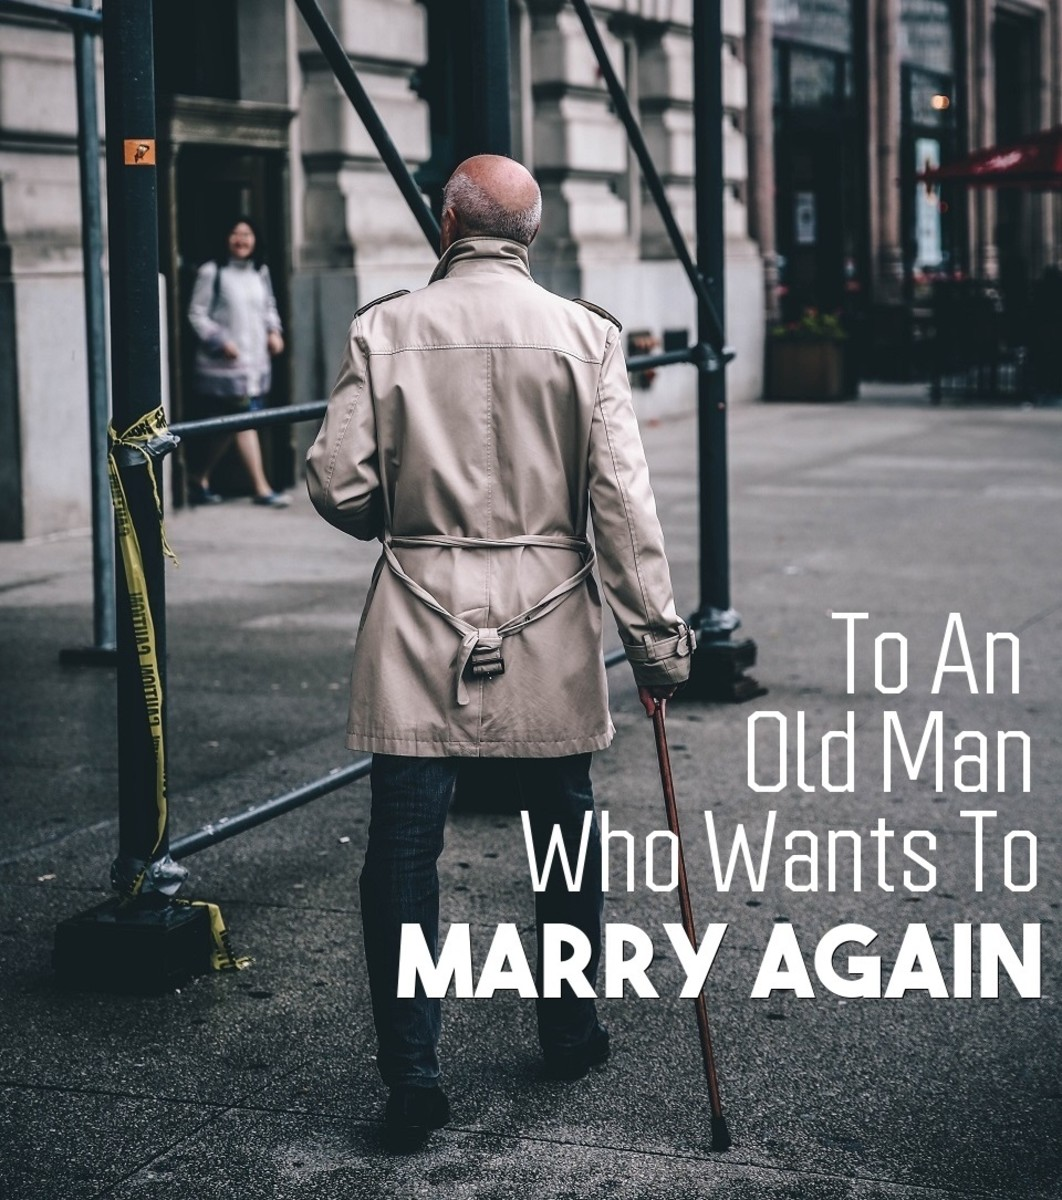 To An Old Man Who Wants to Marry Again